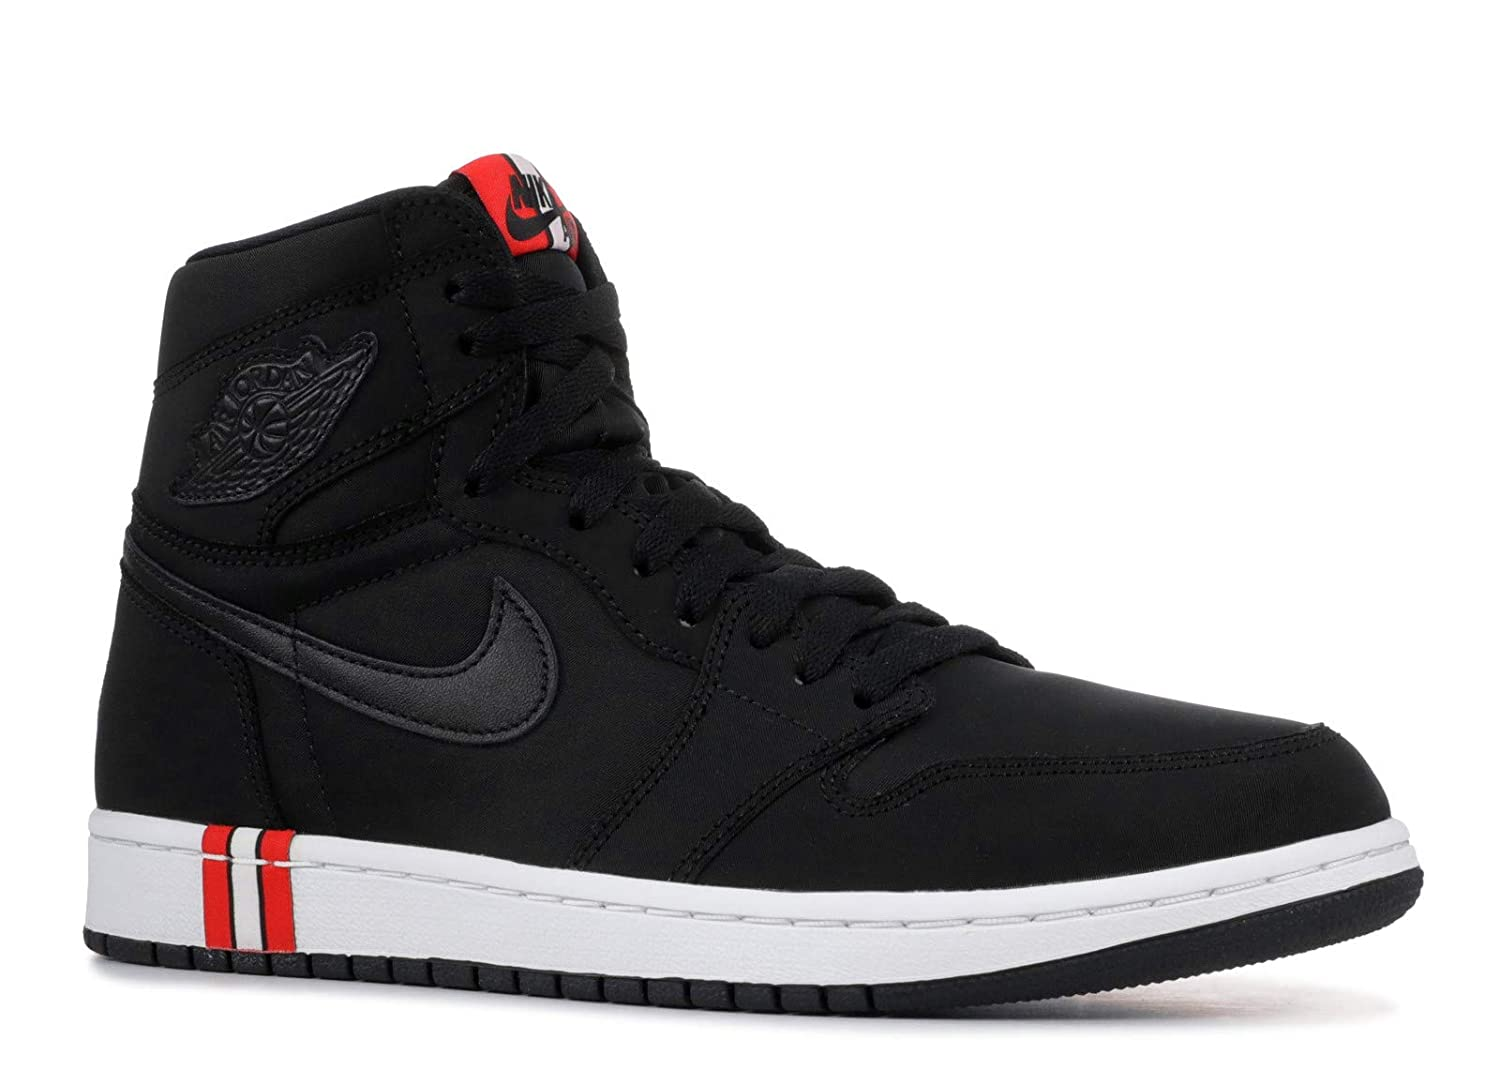 Image of Basketball AIR JORDAN 1 PSG 'Paris Saint German' - Ar3254-001 - Size